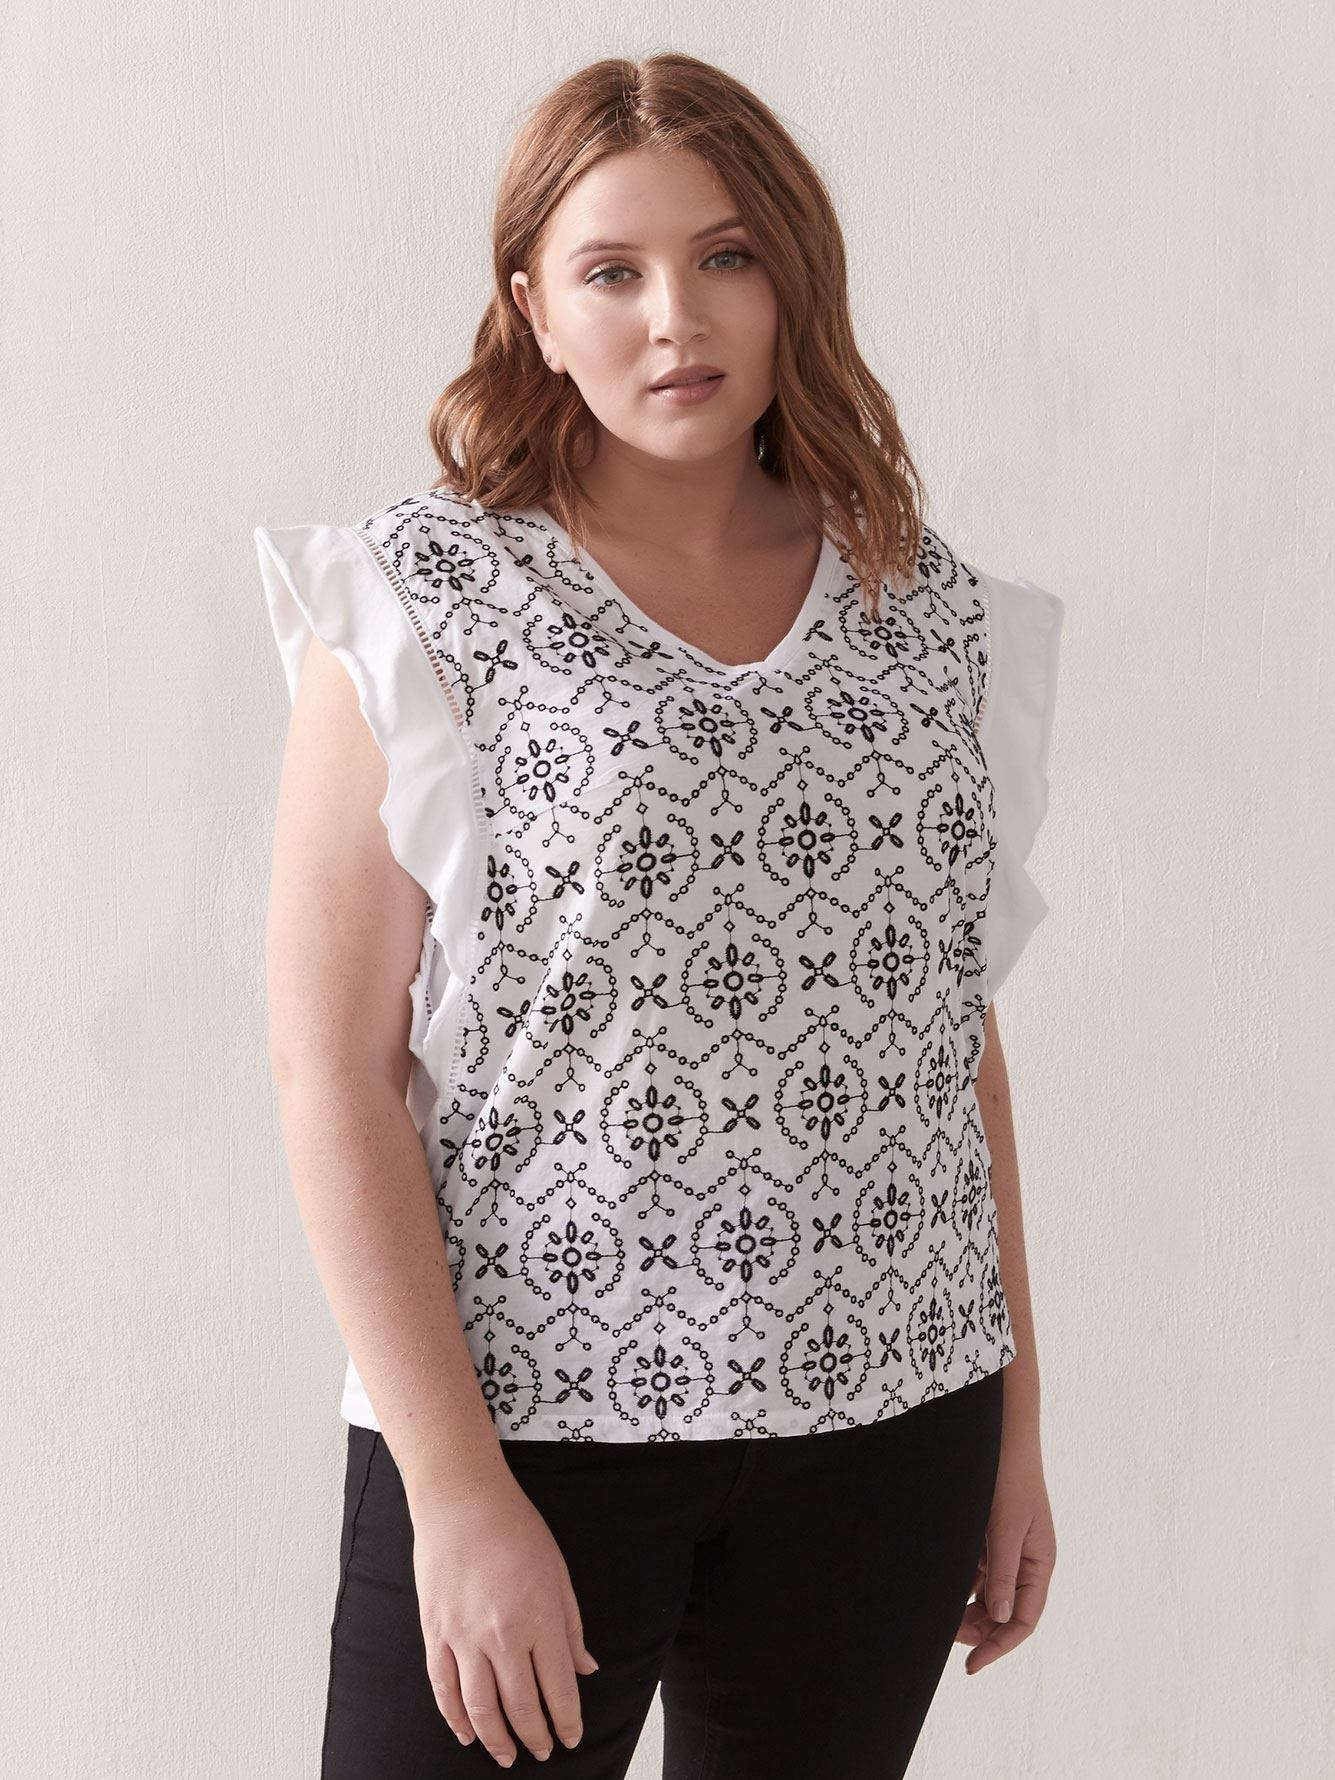 Model in the black and white-patterned, sleeveless top